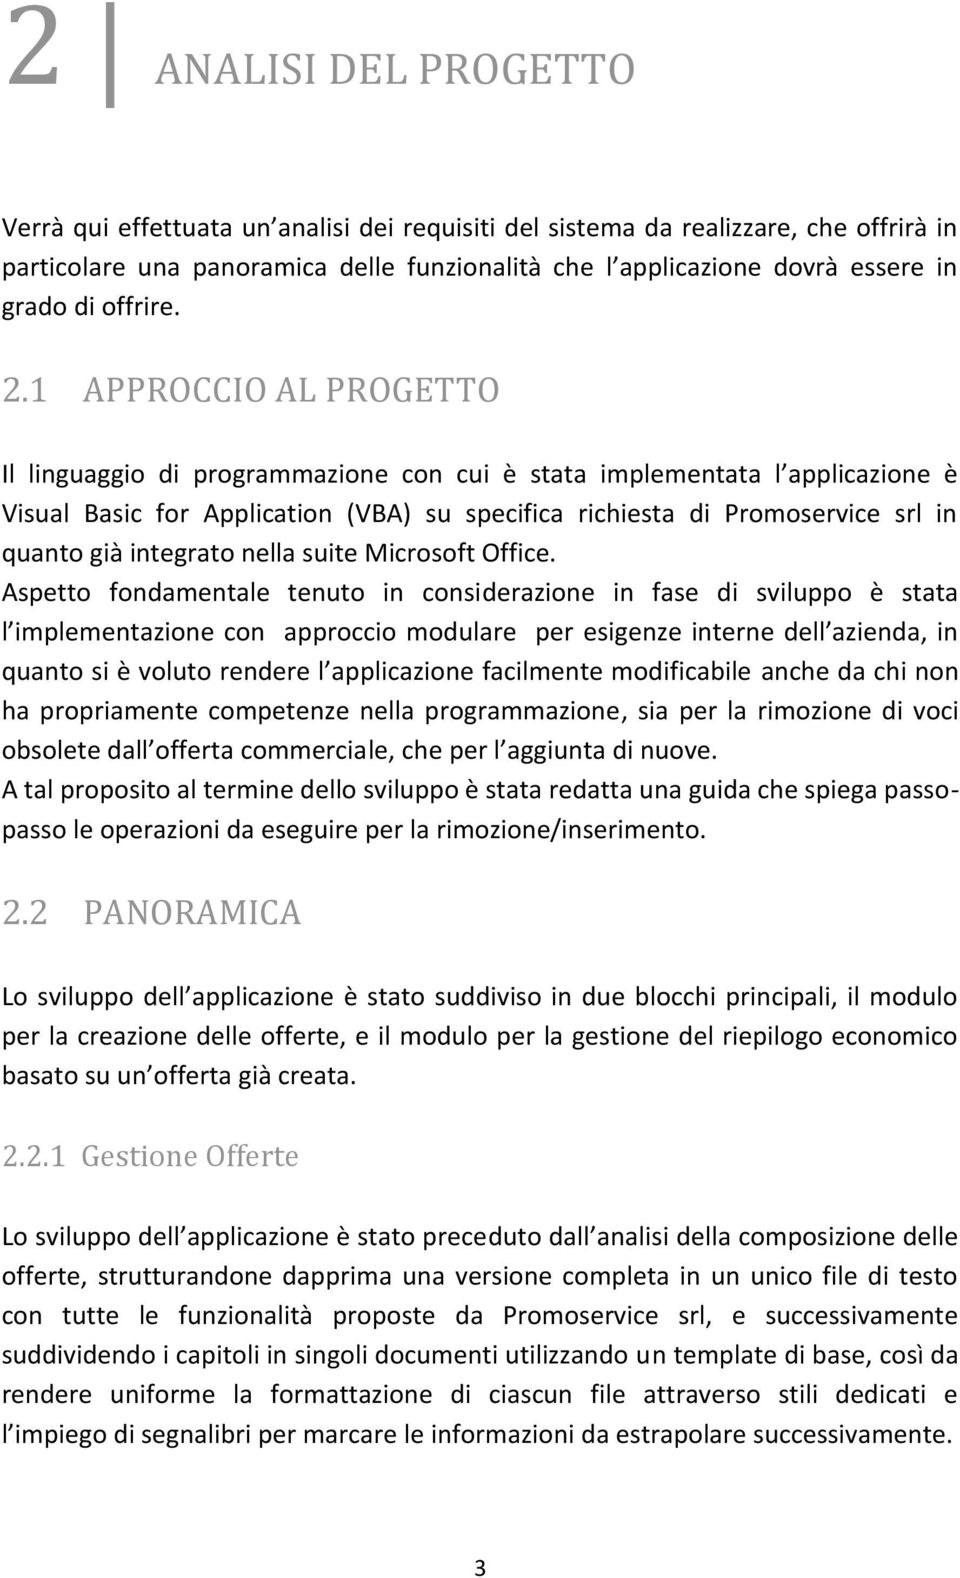 1 APPROCCIO AL PROGETTO Il linguaggio di programmazione con cui è stata implementata l applicazione è Visual Basic for Application (VBA) su specifica richiesta di Promoservice srl in quanto già